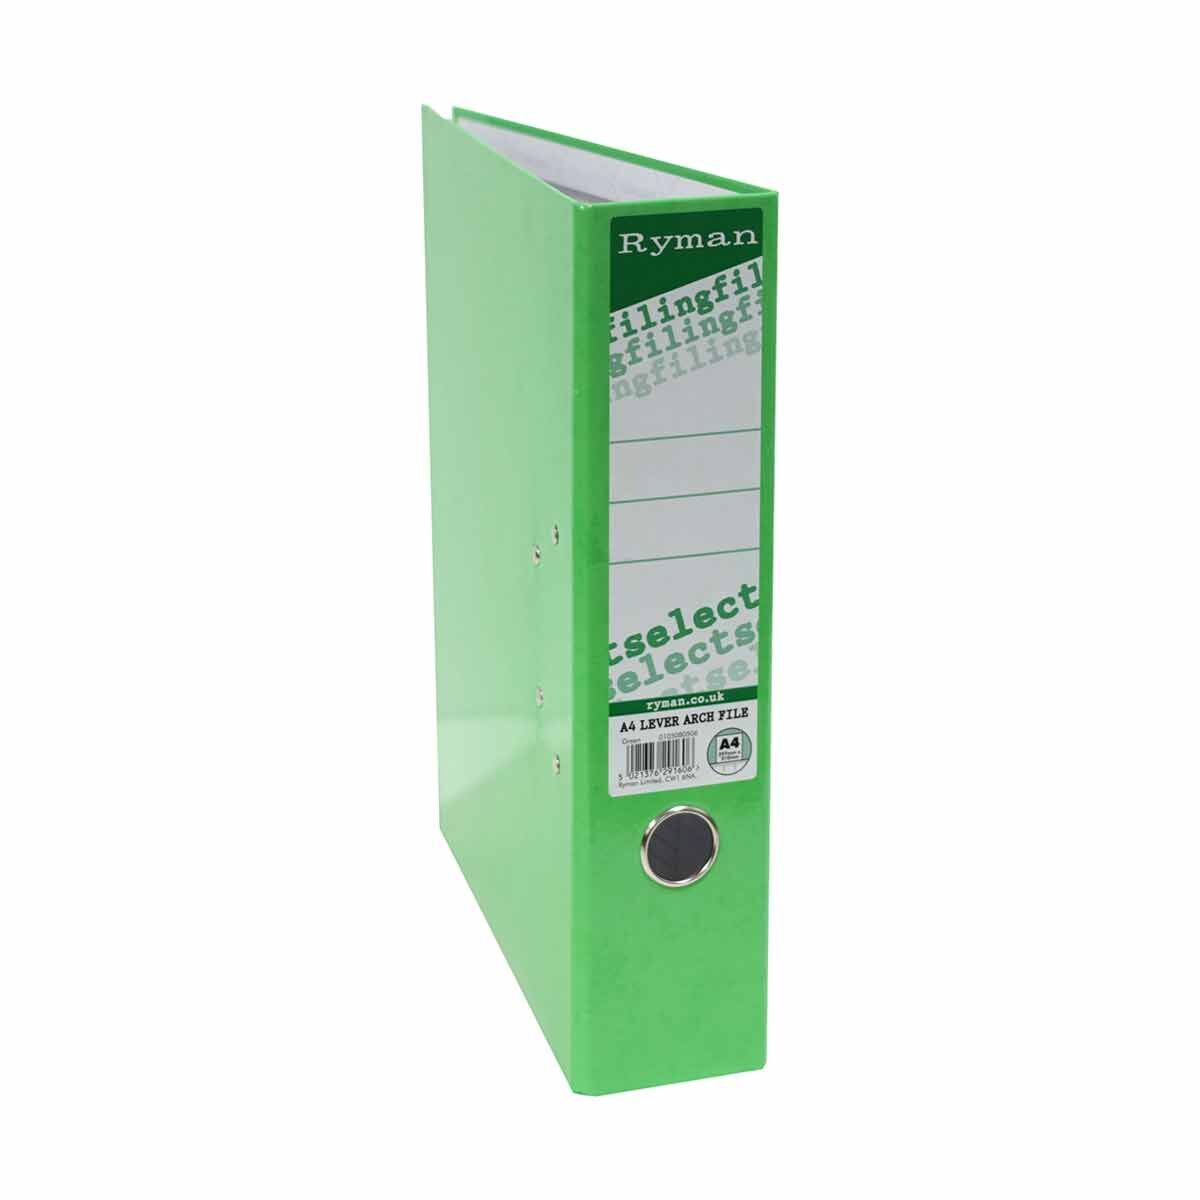 Ryman Select A4 Lever Arch File Green